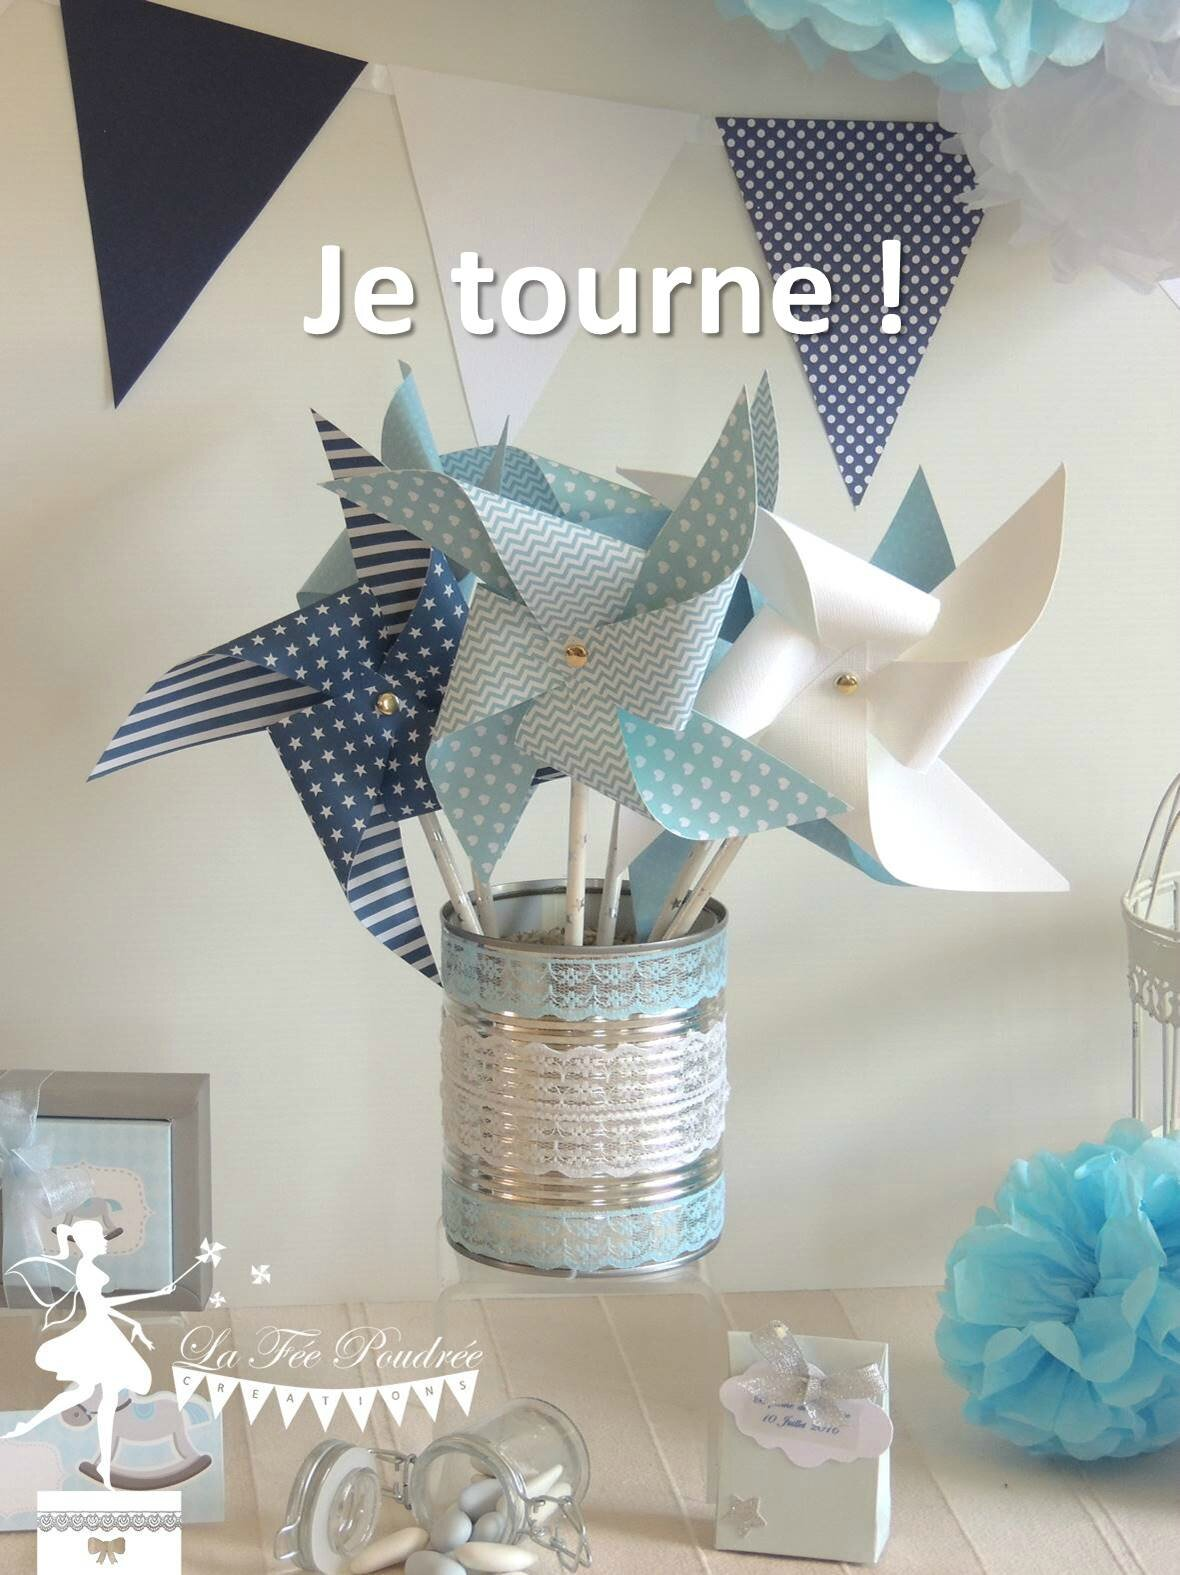 moulin a vent tournant bleu blanc marine guirlande fanions pompon papier soie chevron rayures. Black Bedroom Furniture Sets. Home Design Ideas